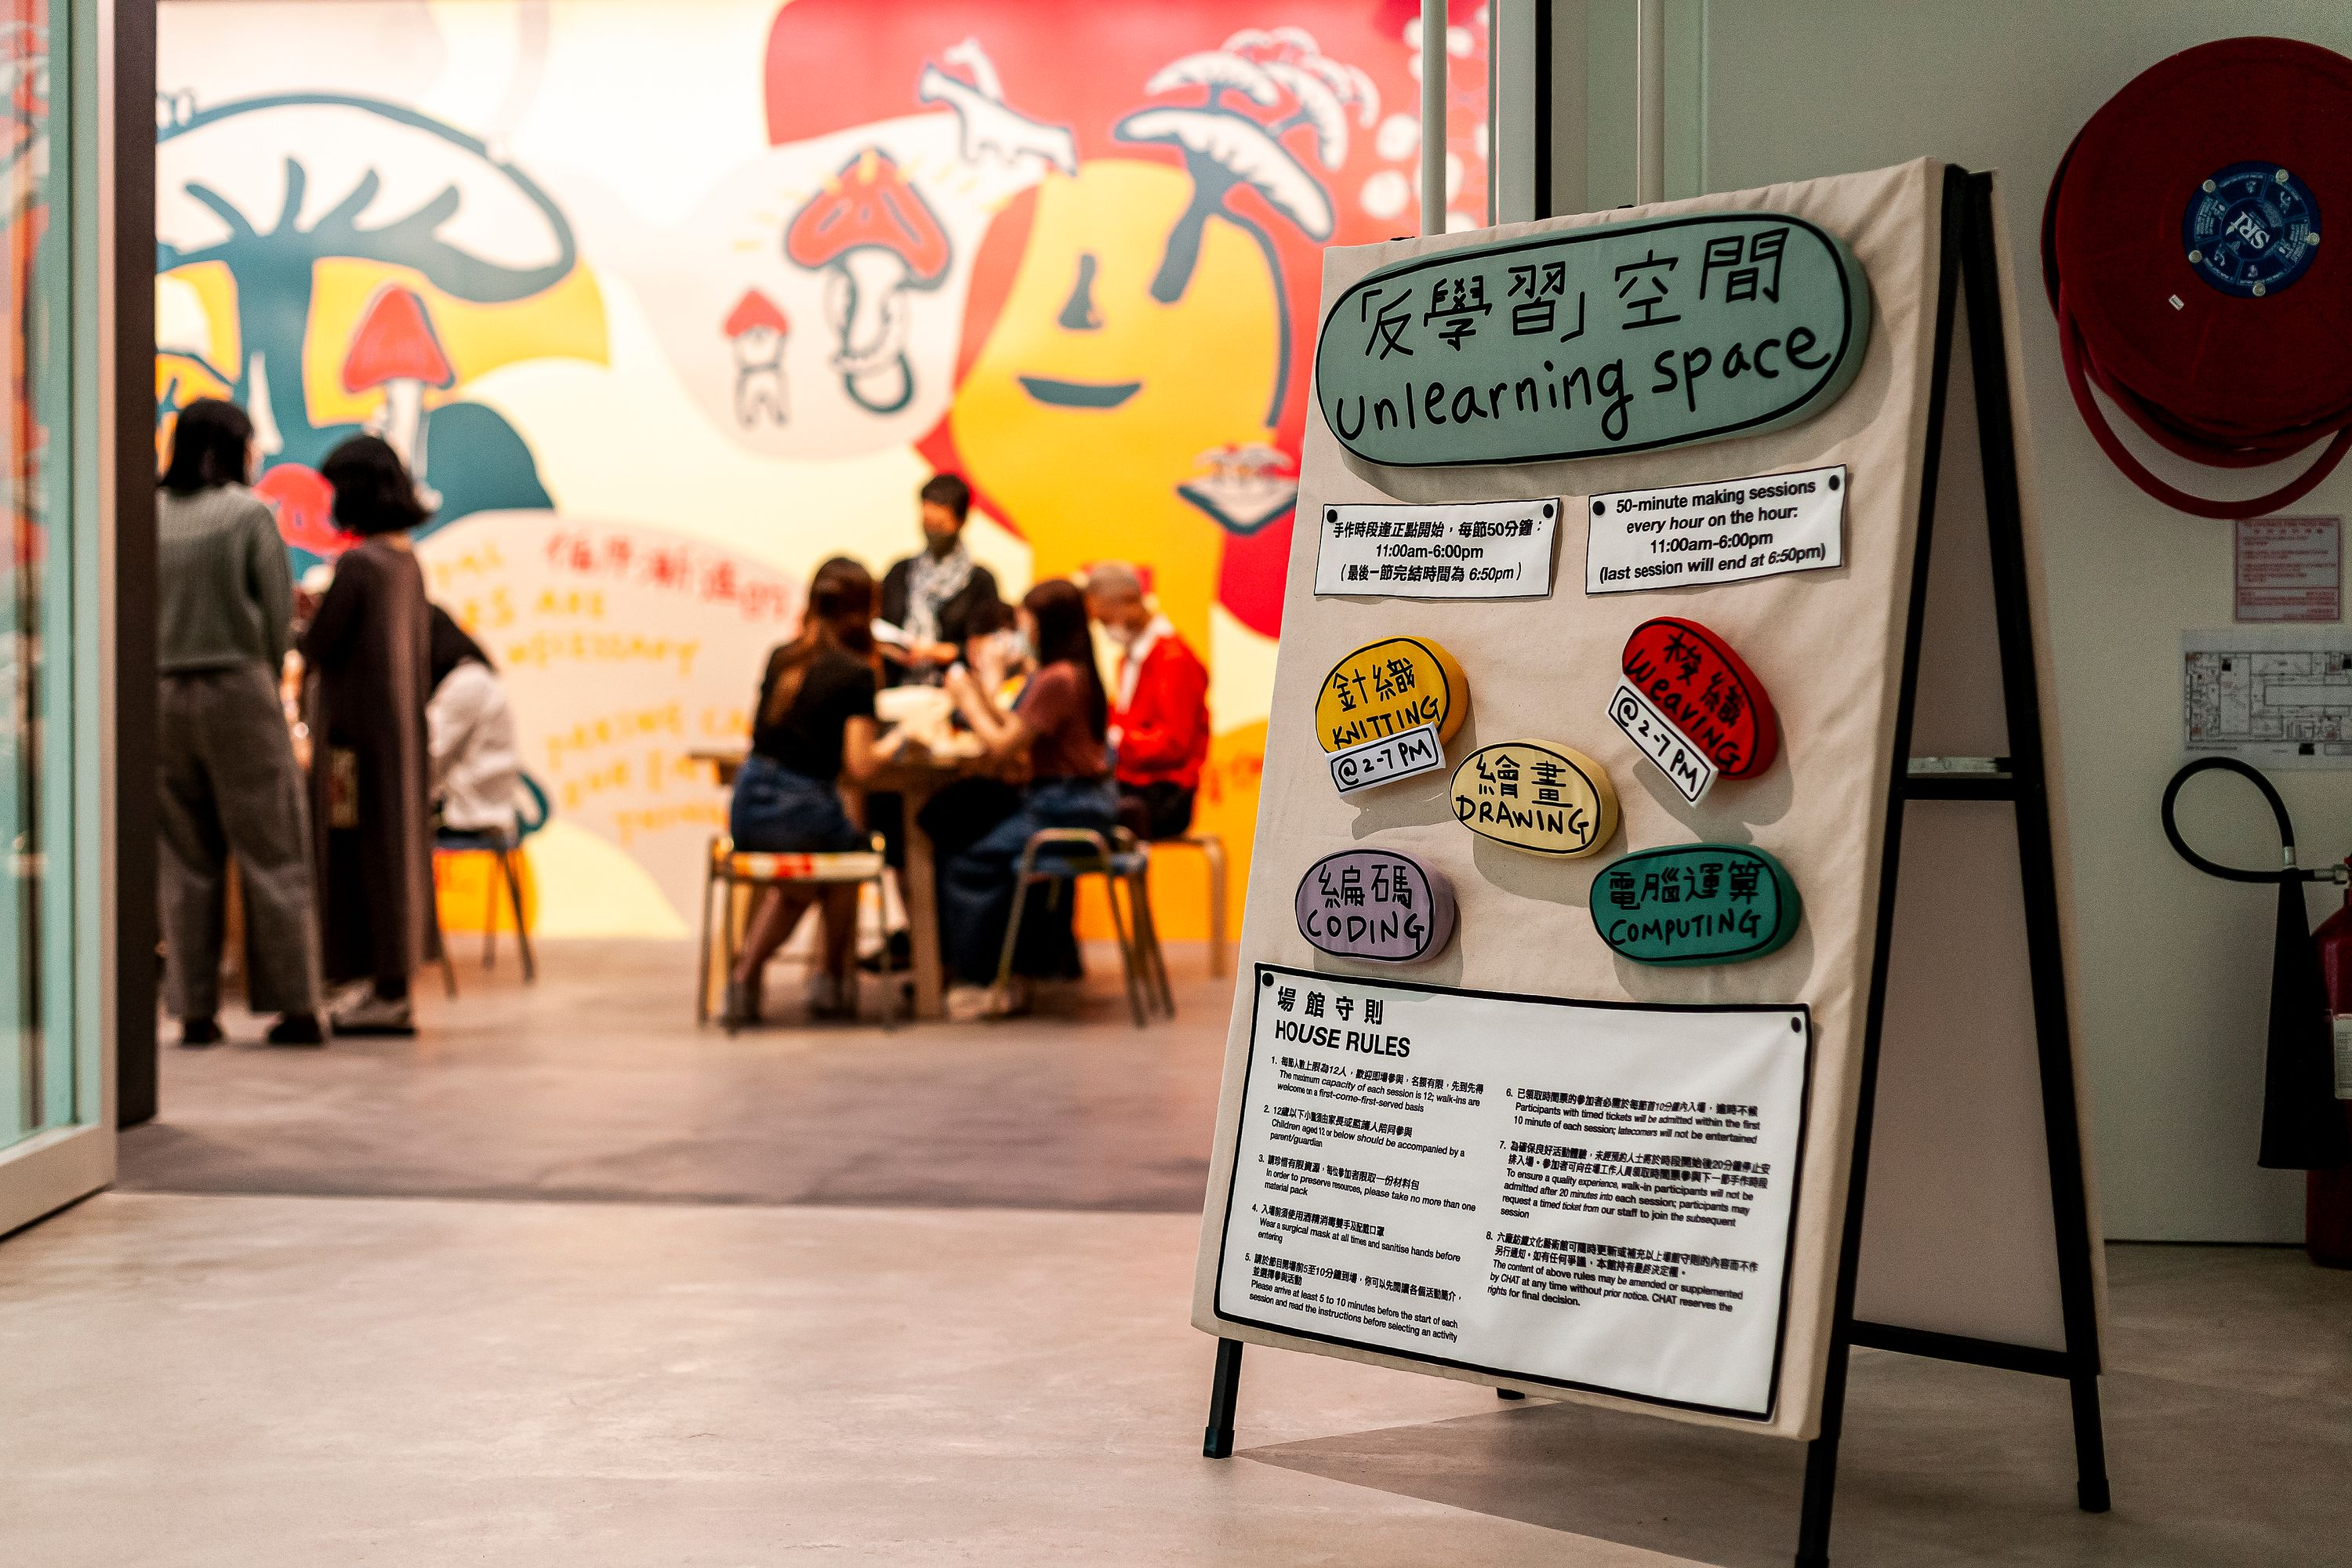 """In the foreground, a sandwich board sign says """"Unlearning Space,"""" and in the background, students gather at tables in a room that has a bright mural on the wall."""